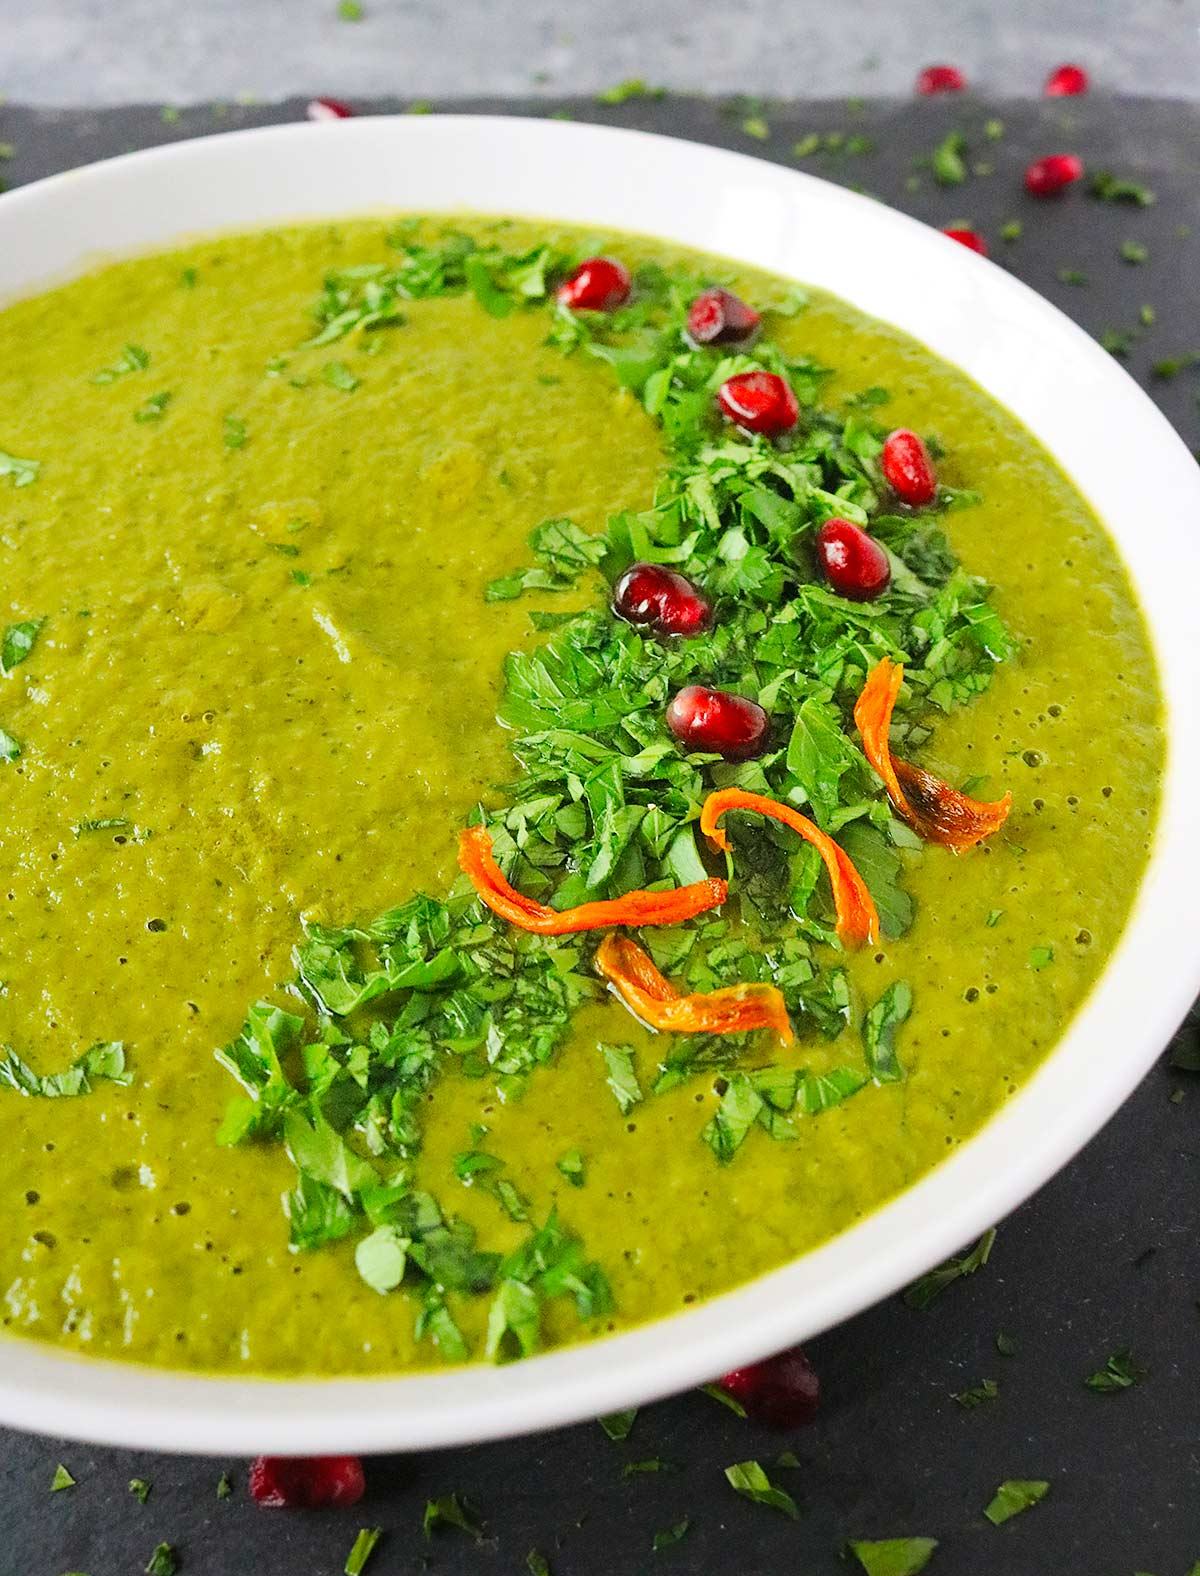 Healthy Tasty Soup from Soupaddict.com